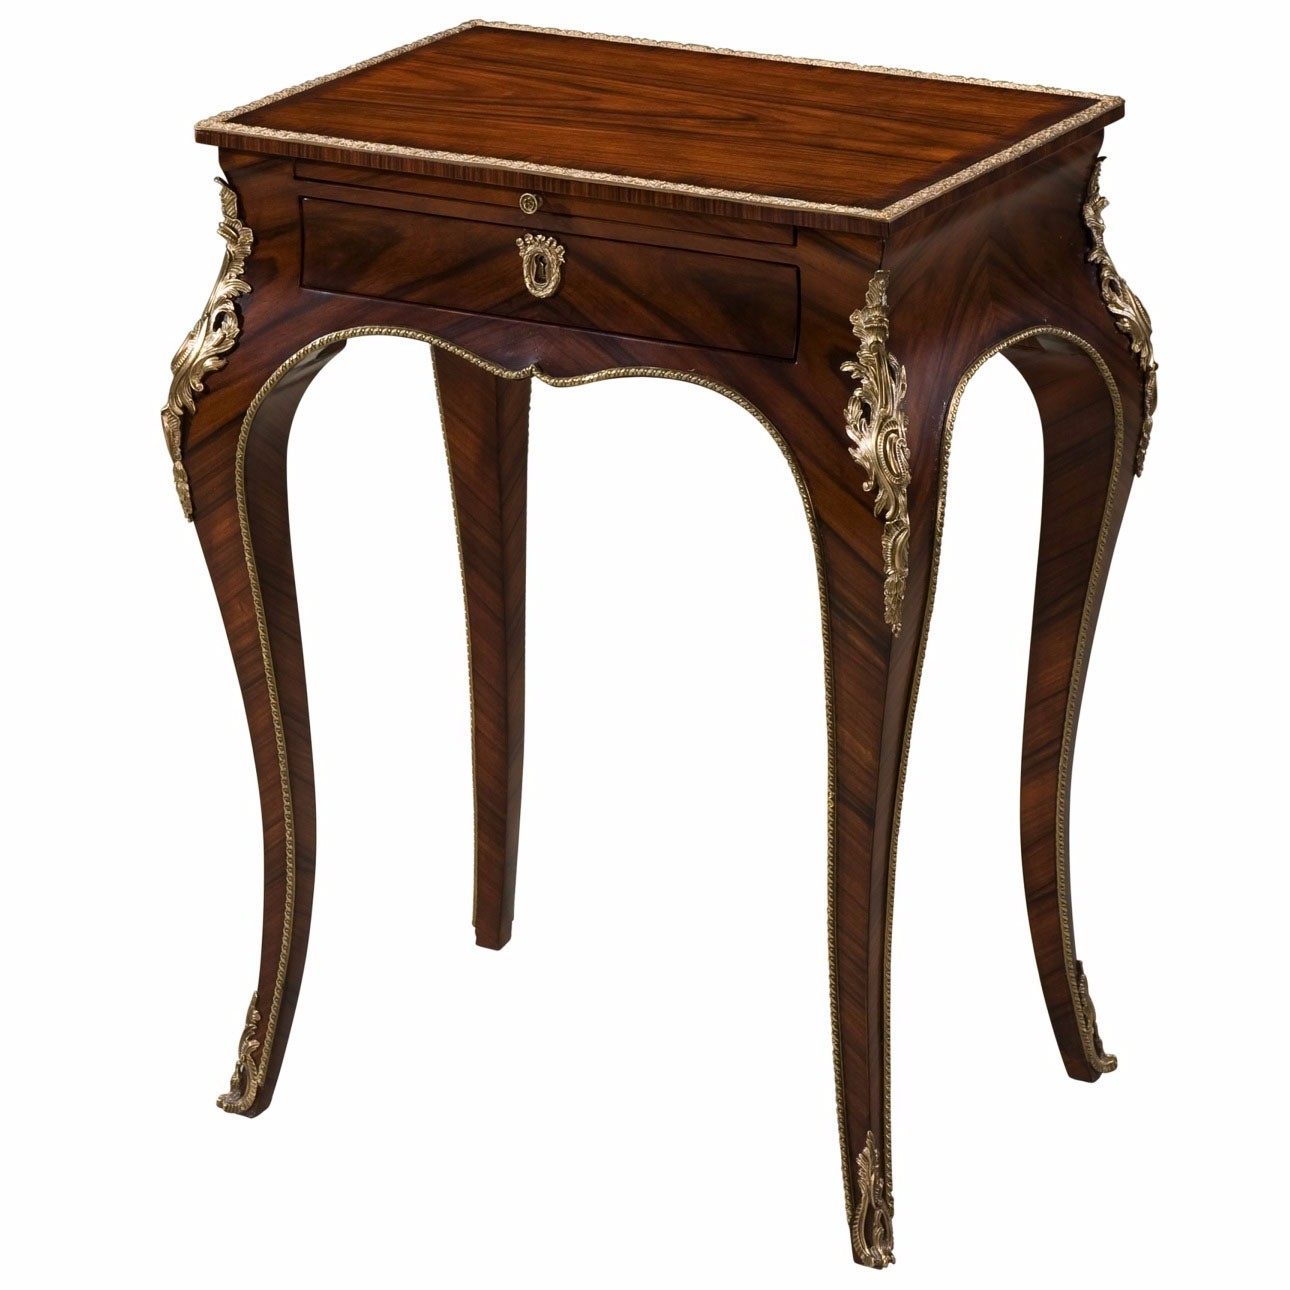 A mahogany and ormolu mounted lamp table